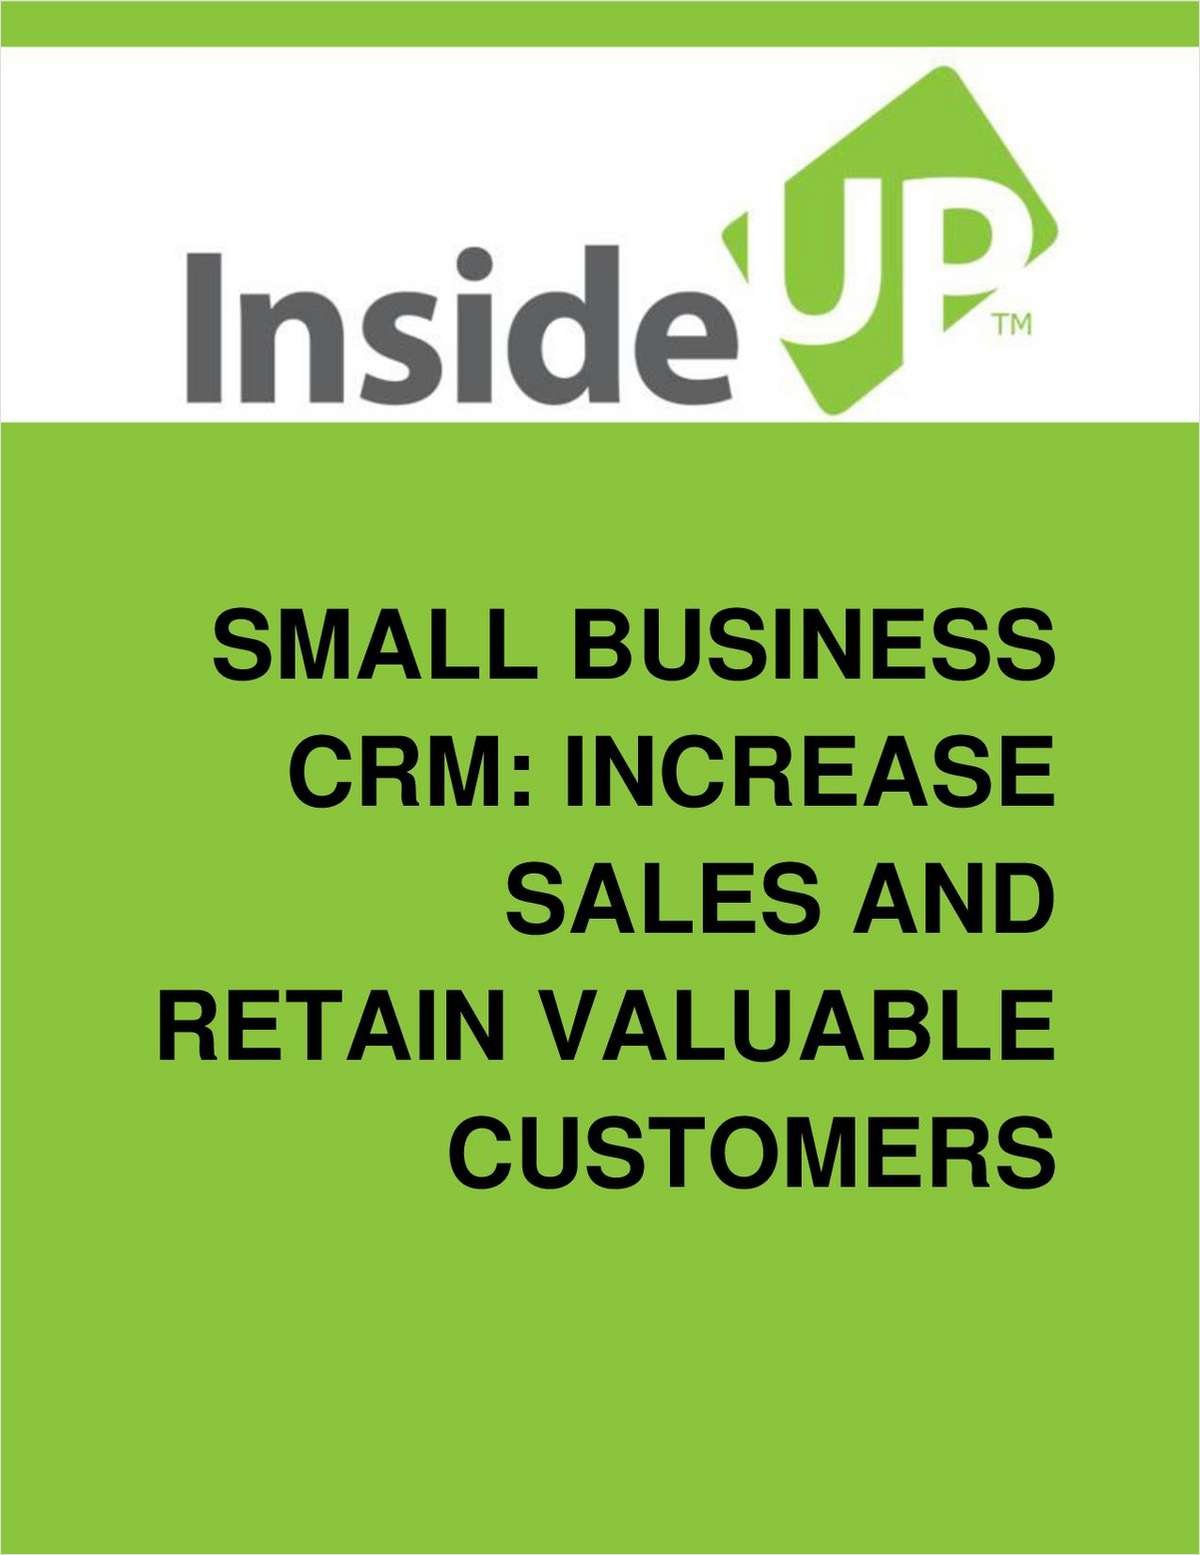 Small Business CRM Systems: How To Increase Sales And Retain Valuable Customers